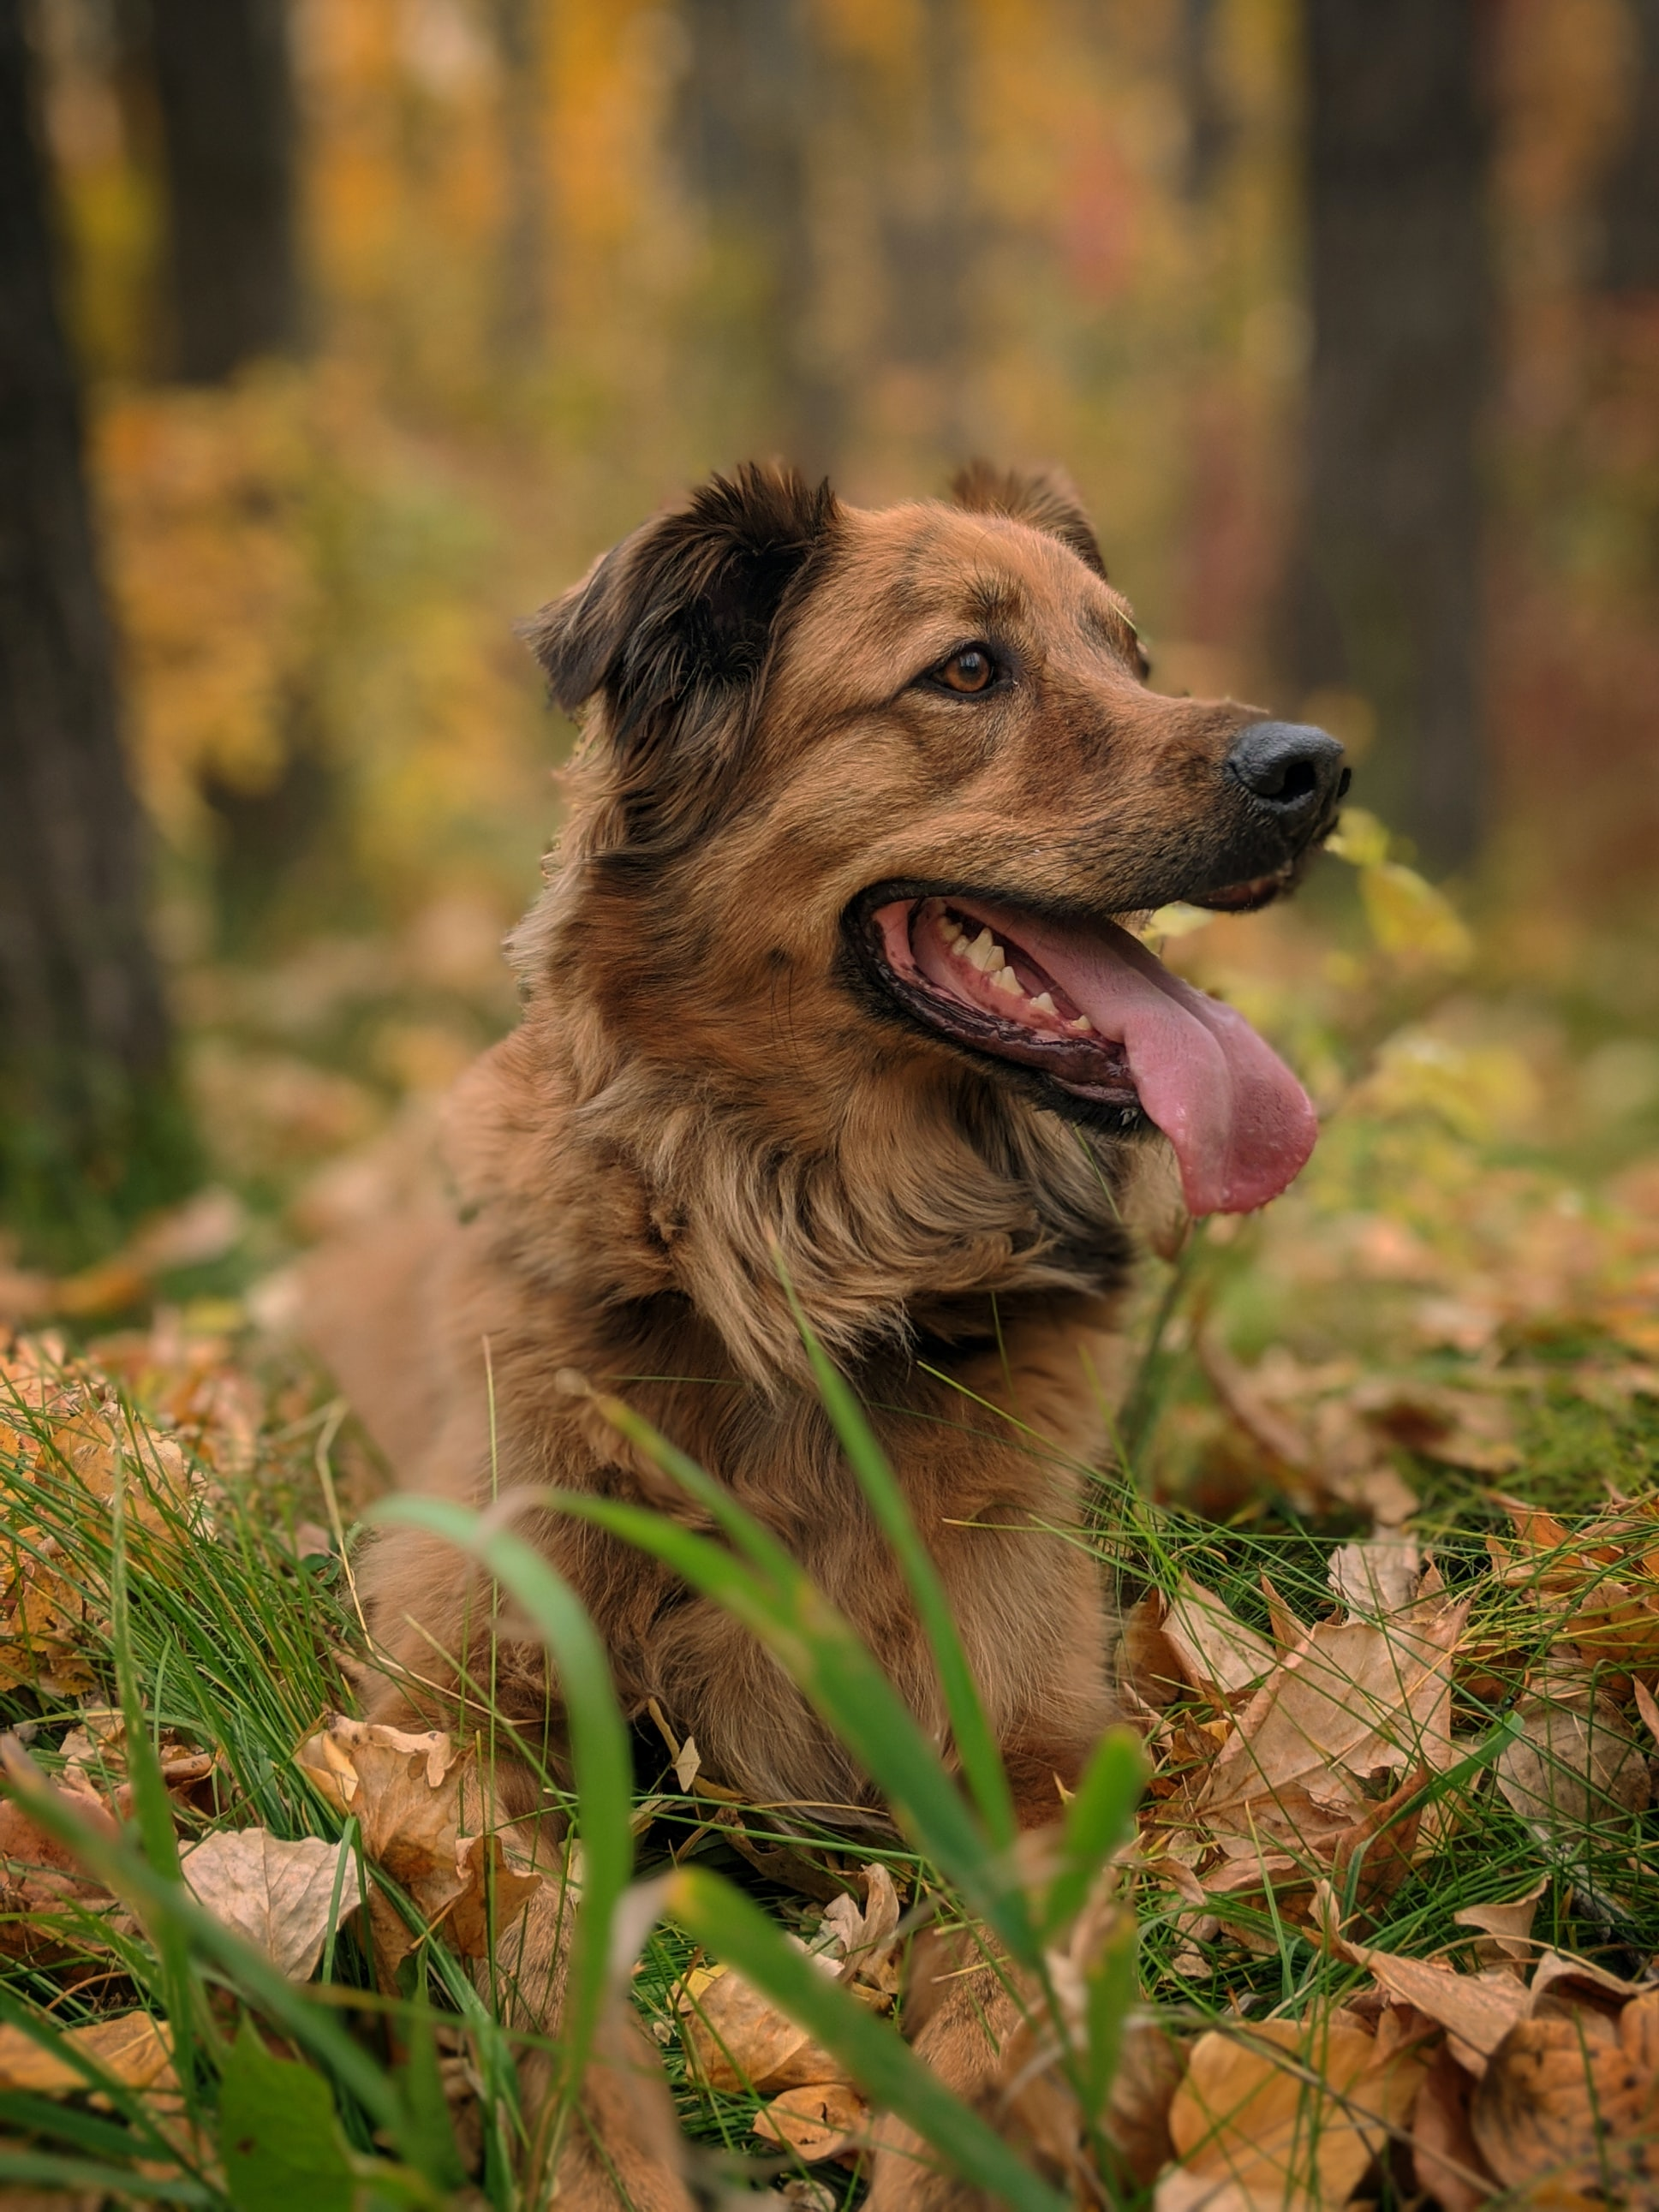 98315 download wallpaper Animals, Dog, Protruding Tongue, Tongue Stuck Out, Animal, Funny, Pet, Grass screensavers and pictures for free